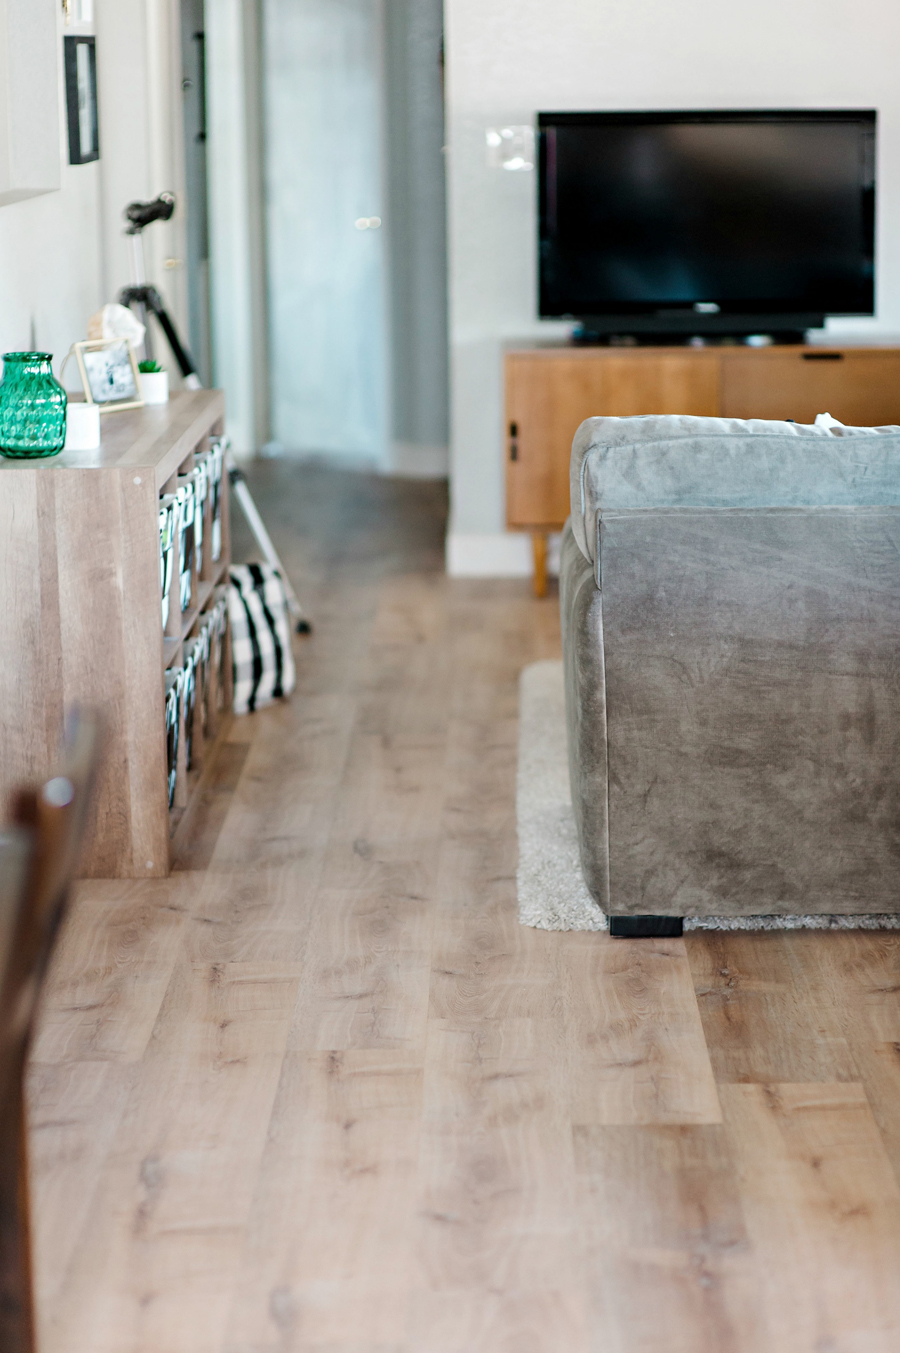 Look vinyl plank flooring from allure wood look vinyl plank flooring from allure dailygadgetfo Image collections